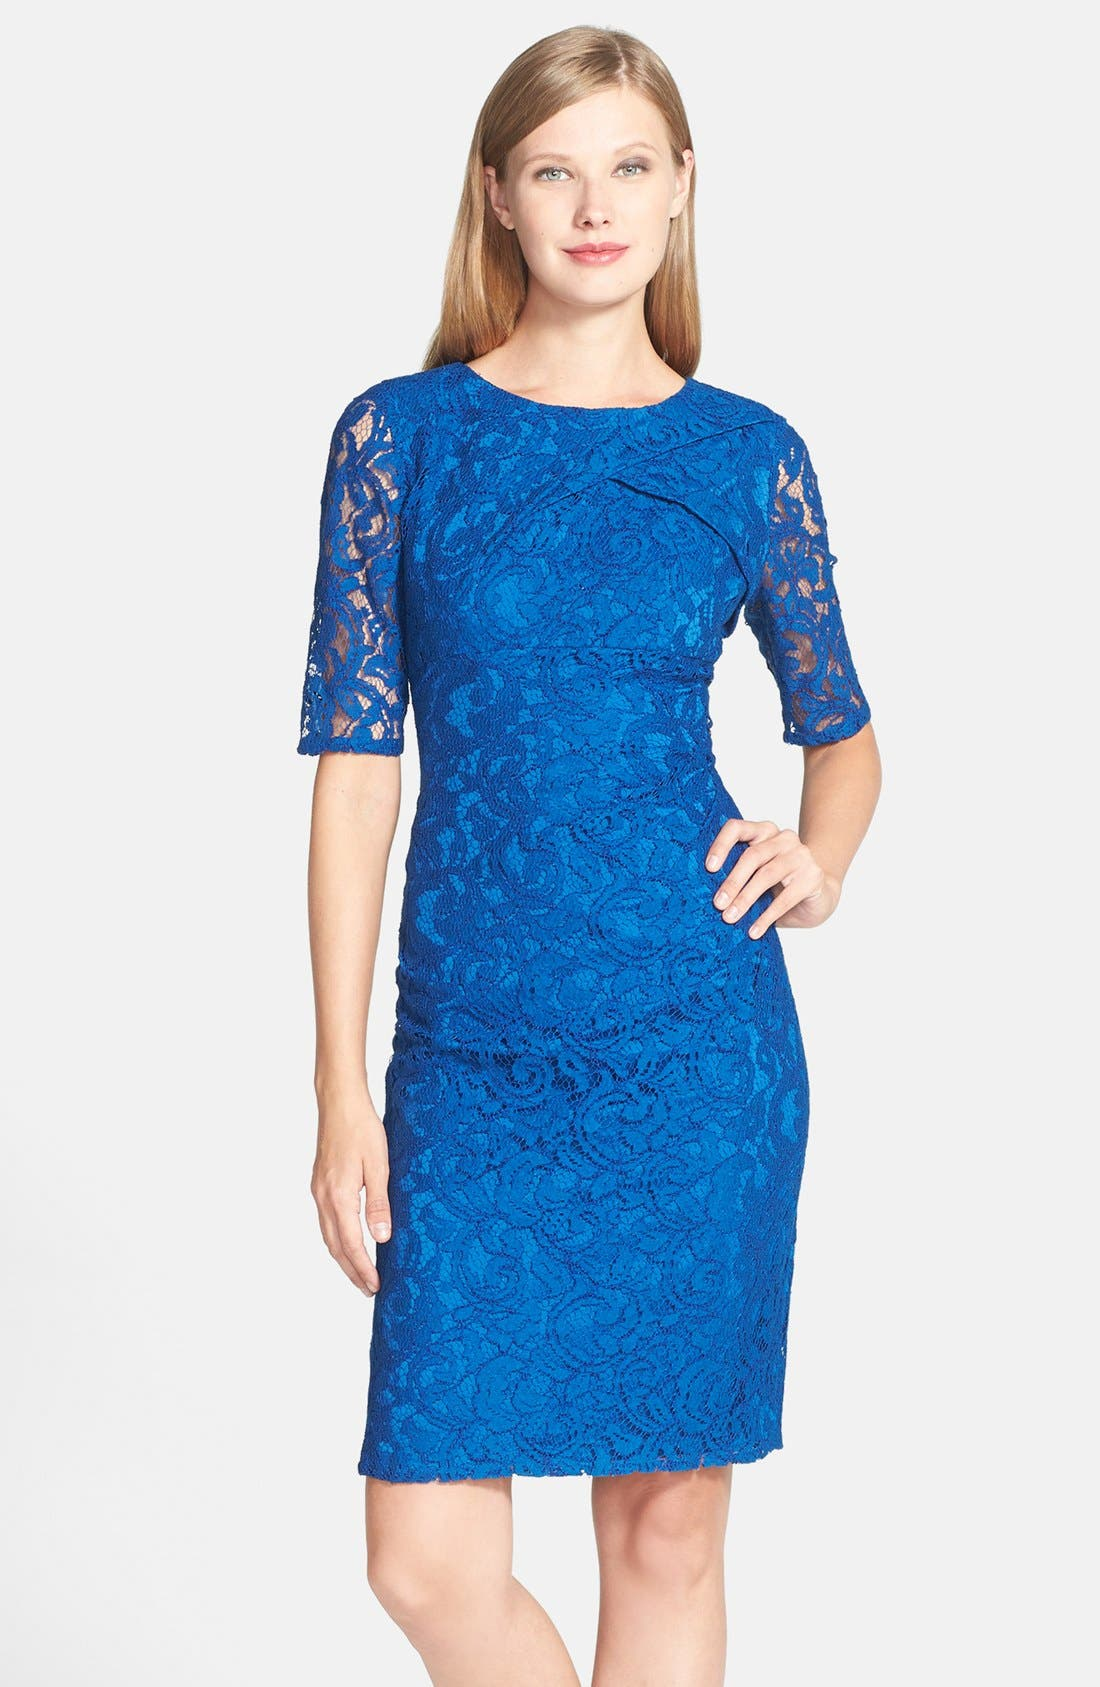 Alternate Image 1 Selected - Adrianna Papell Pleat Neck Lace Sheath Dress